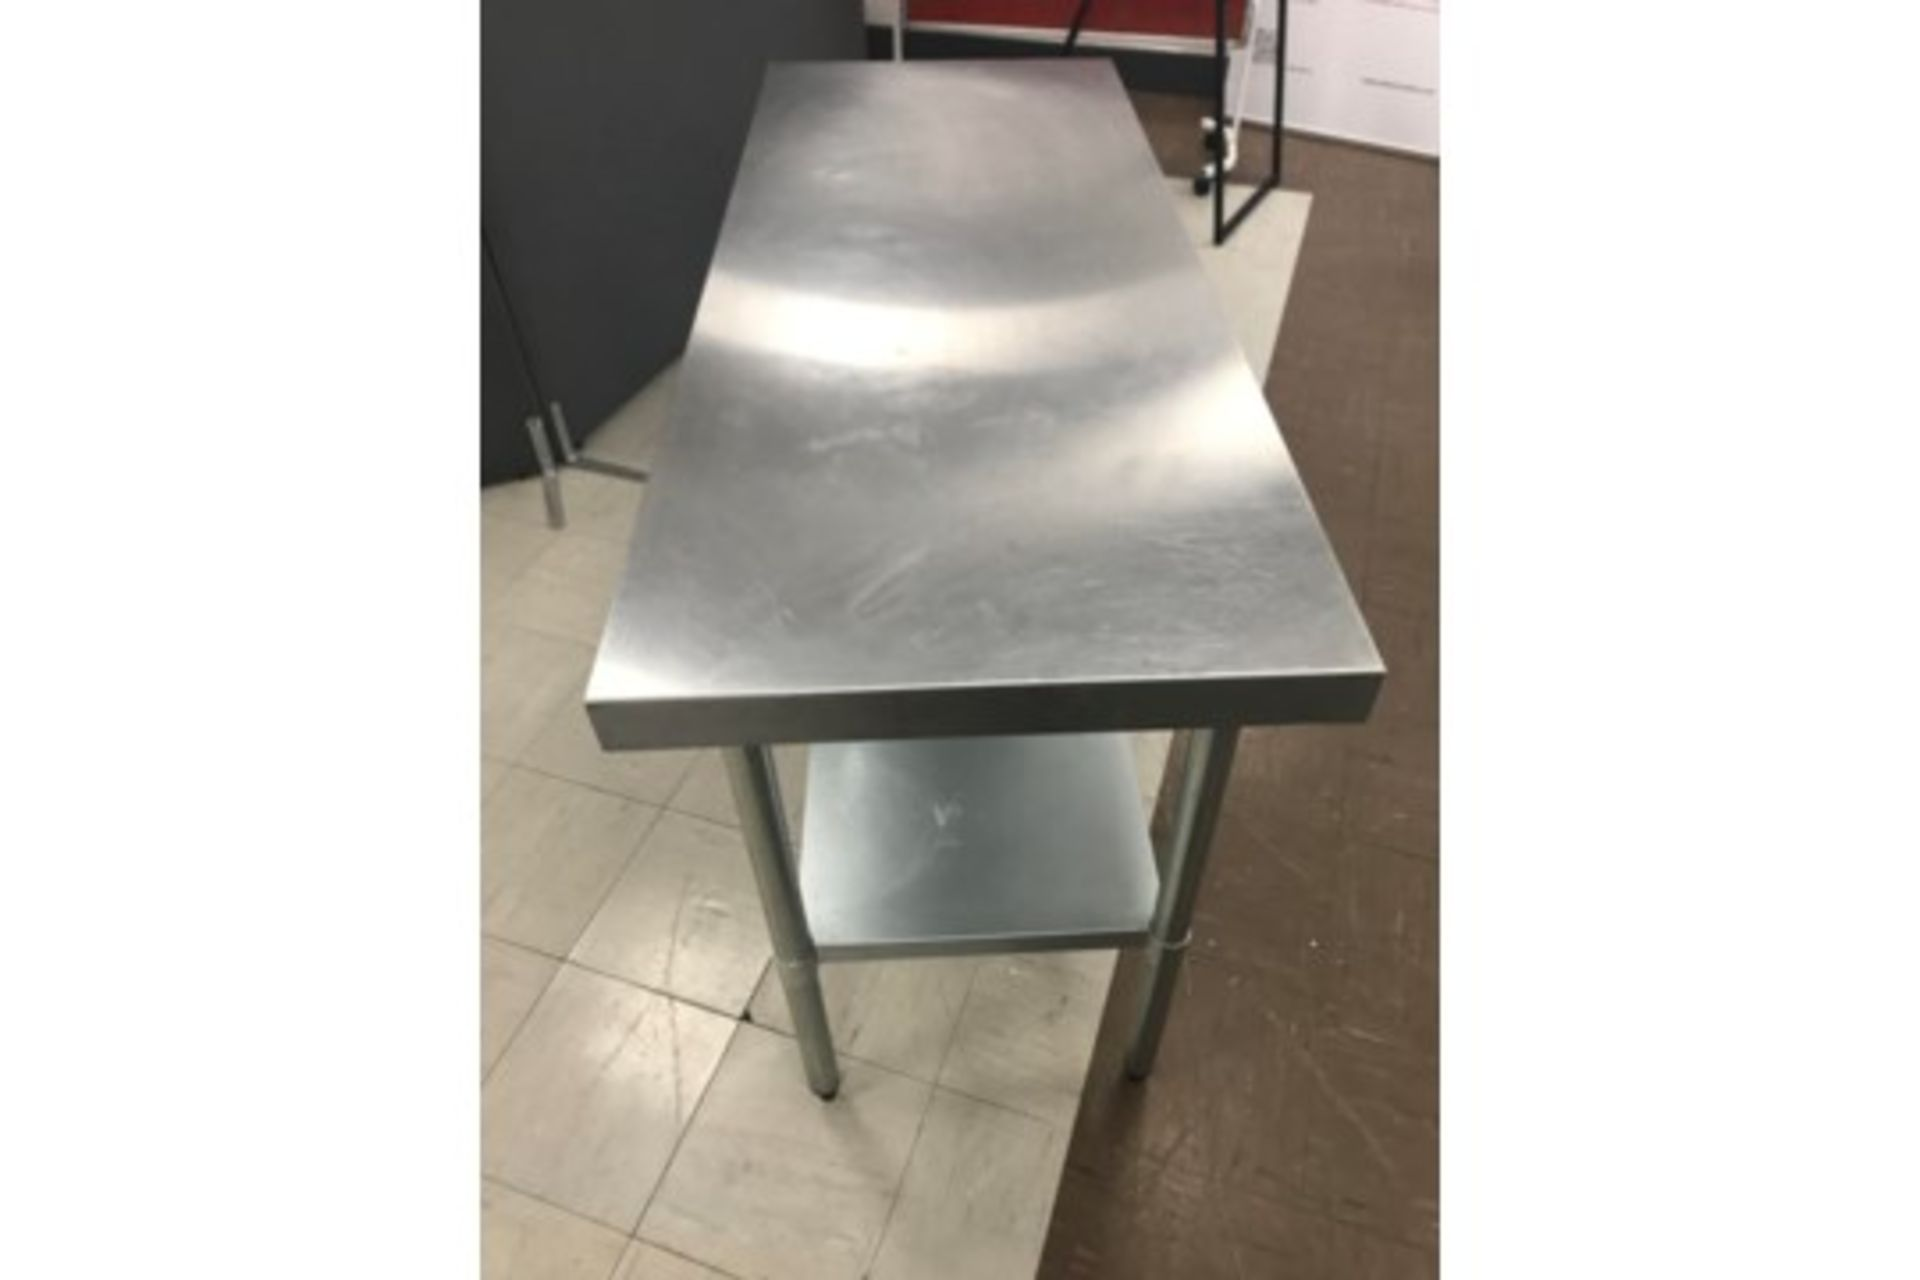 Lot 20 - Vogue Stainless Steel Counter